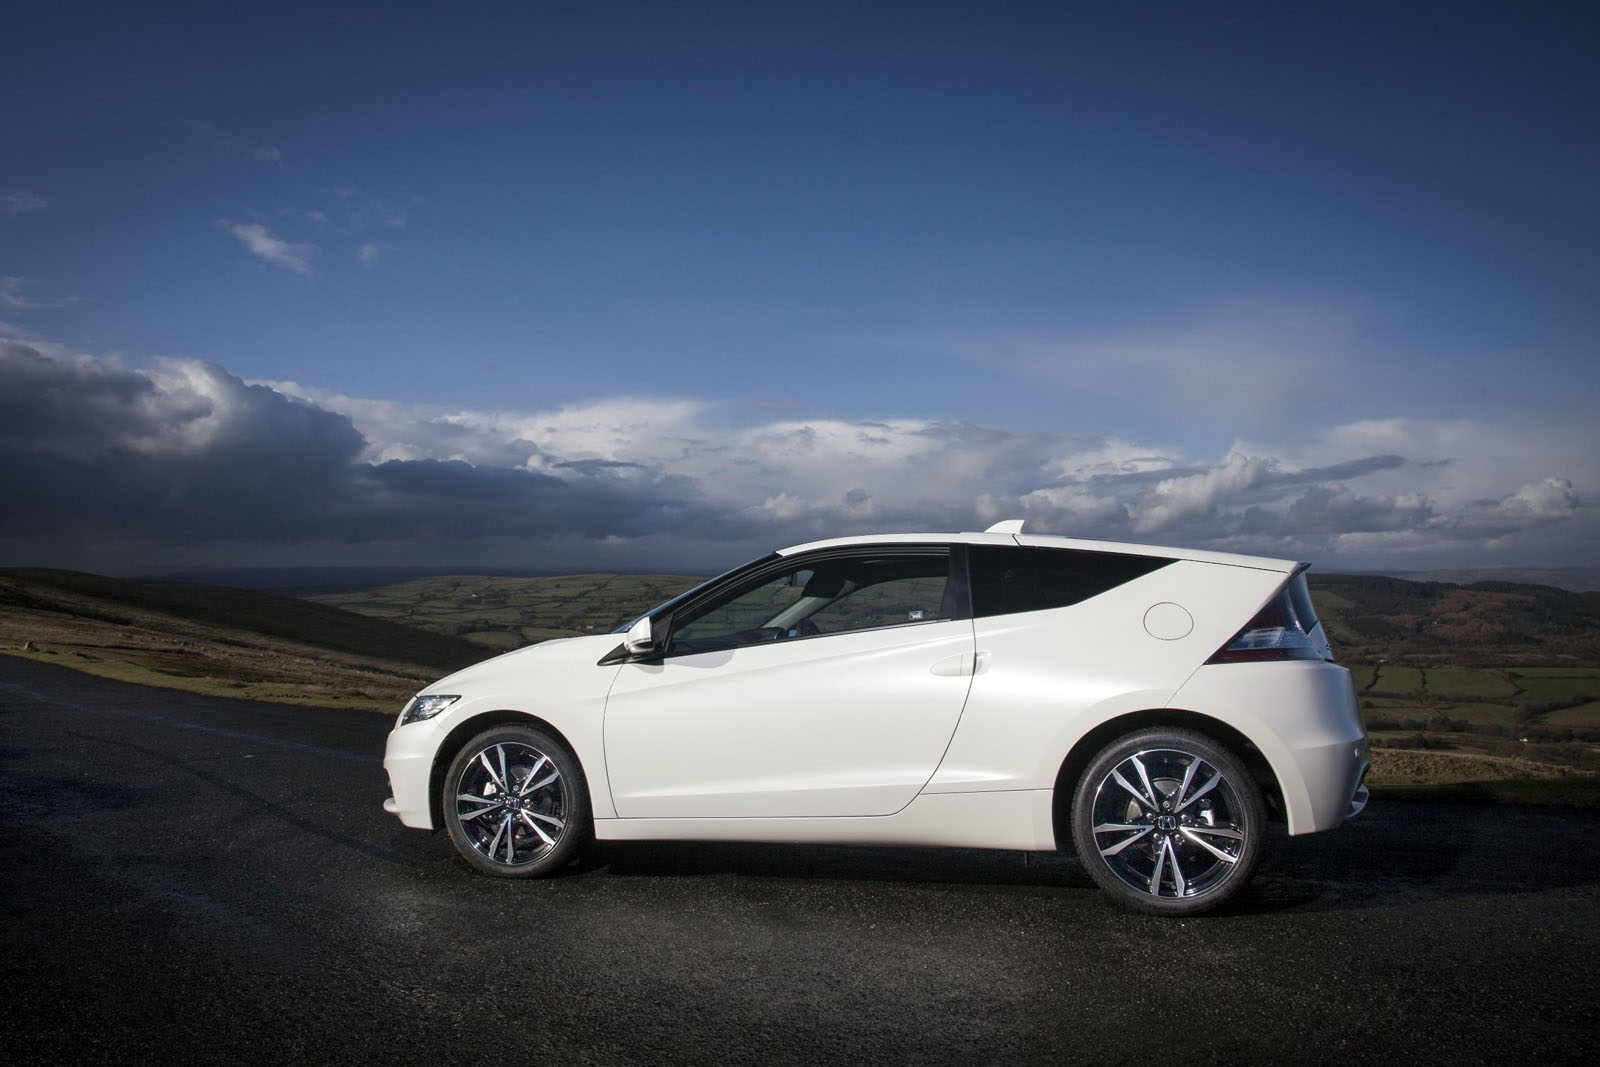 Pictures of honda cr-z 2013